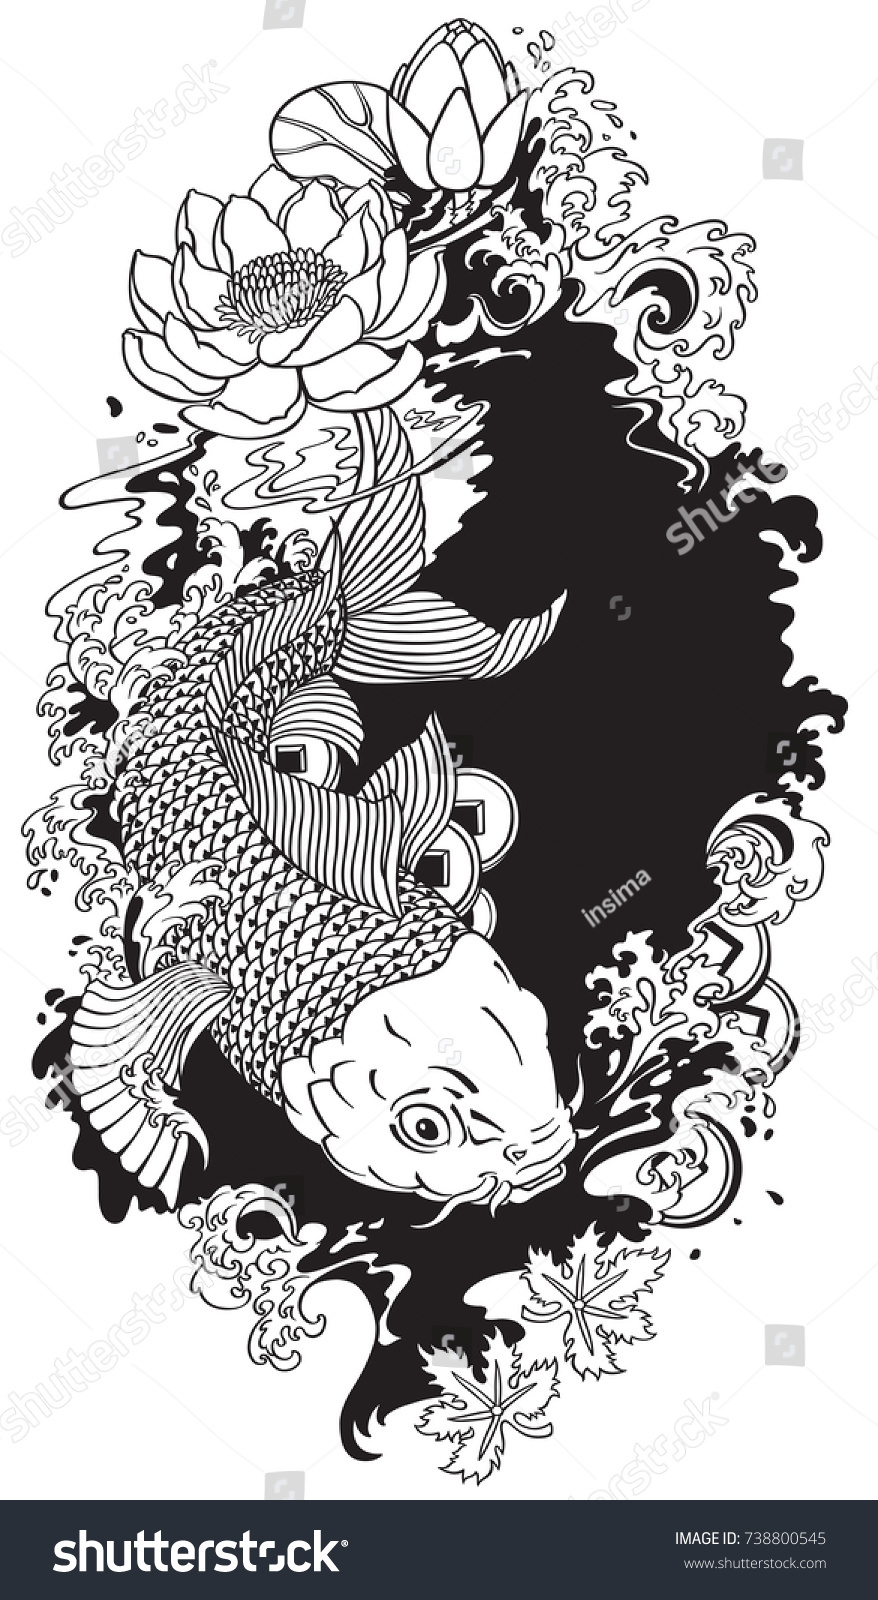 Japanese Koi Gold Carp Fish Lotus Stock Vector Royalty Free